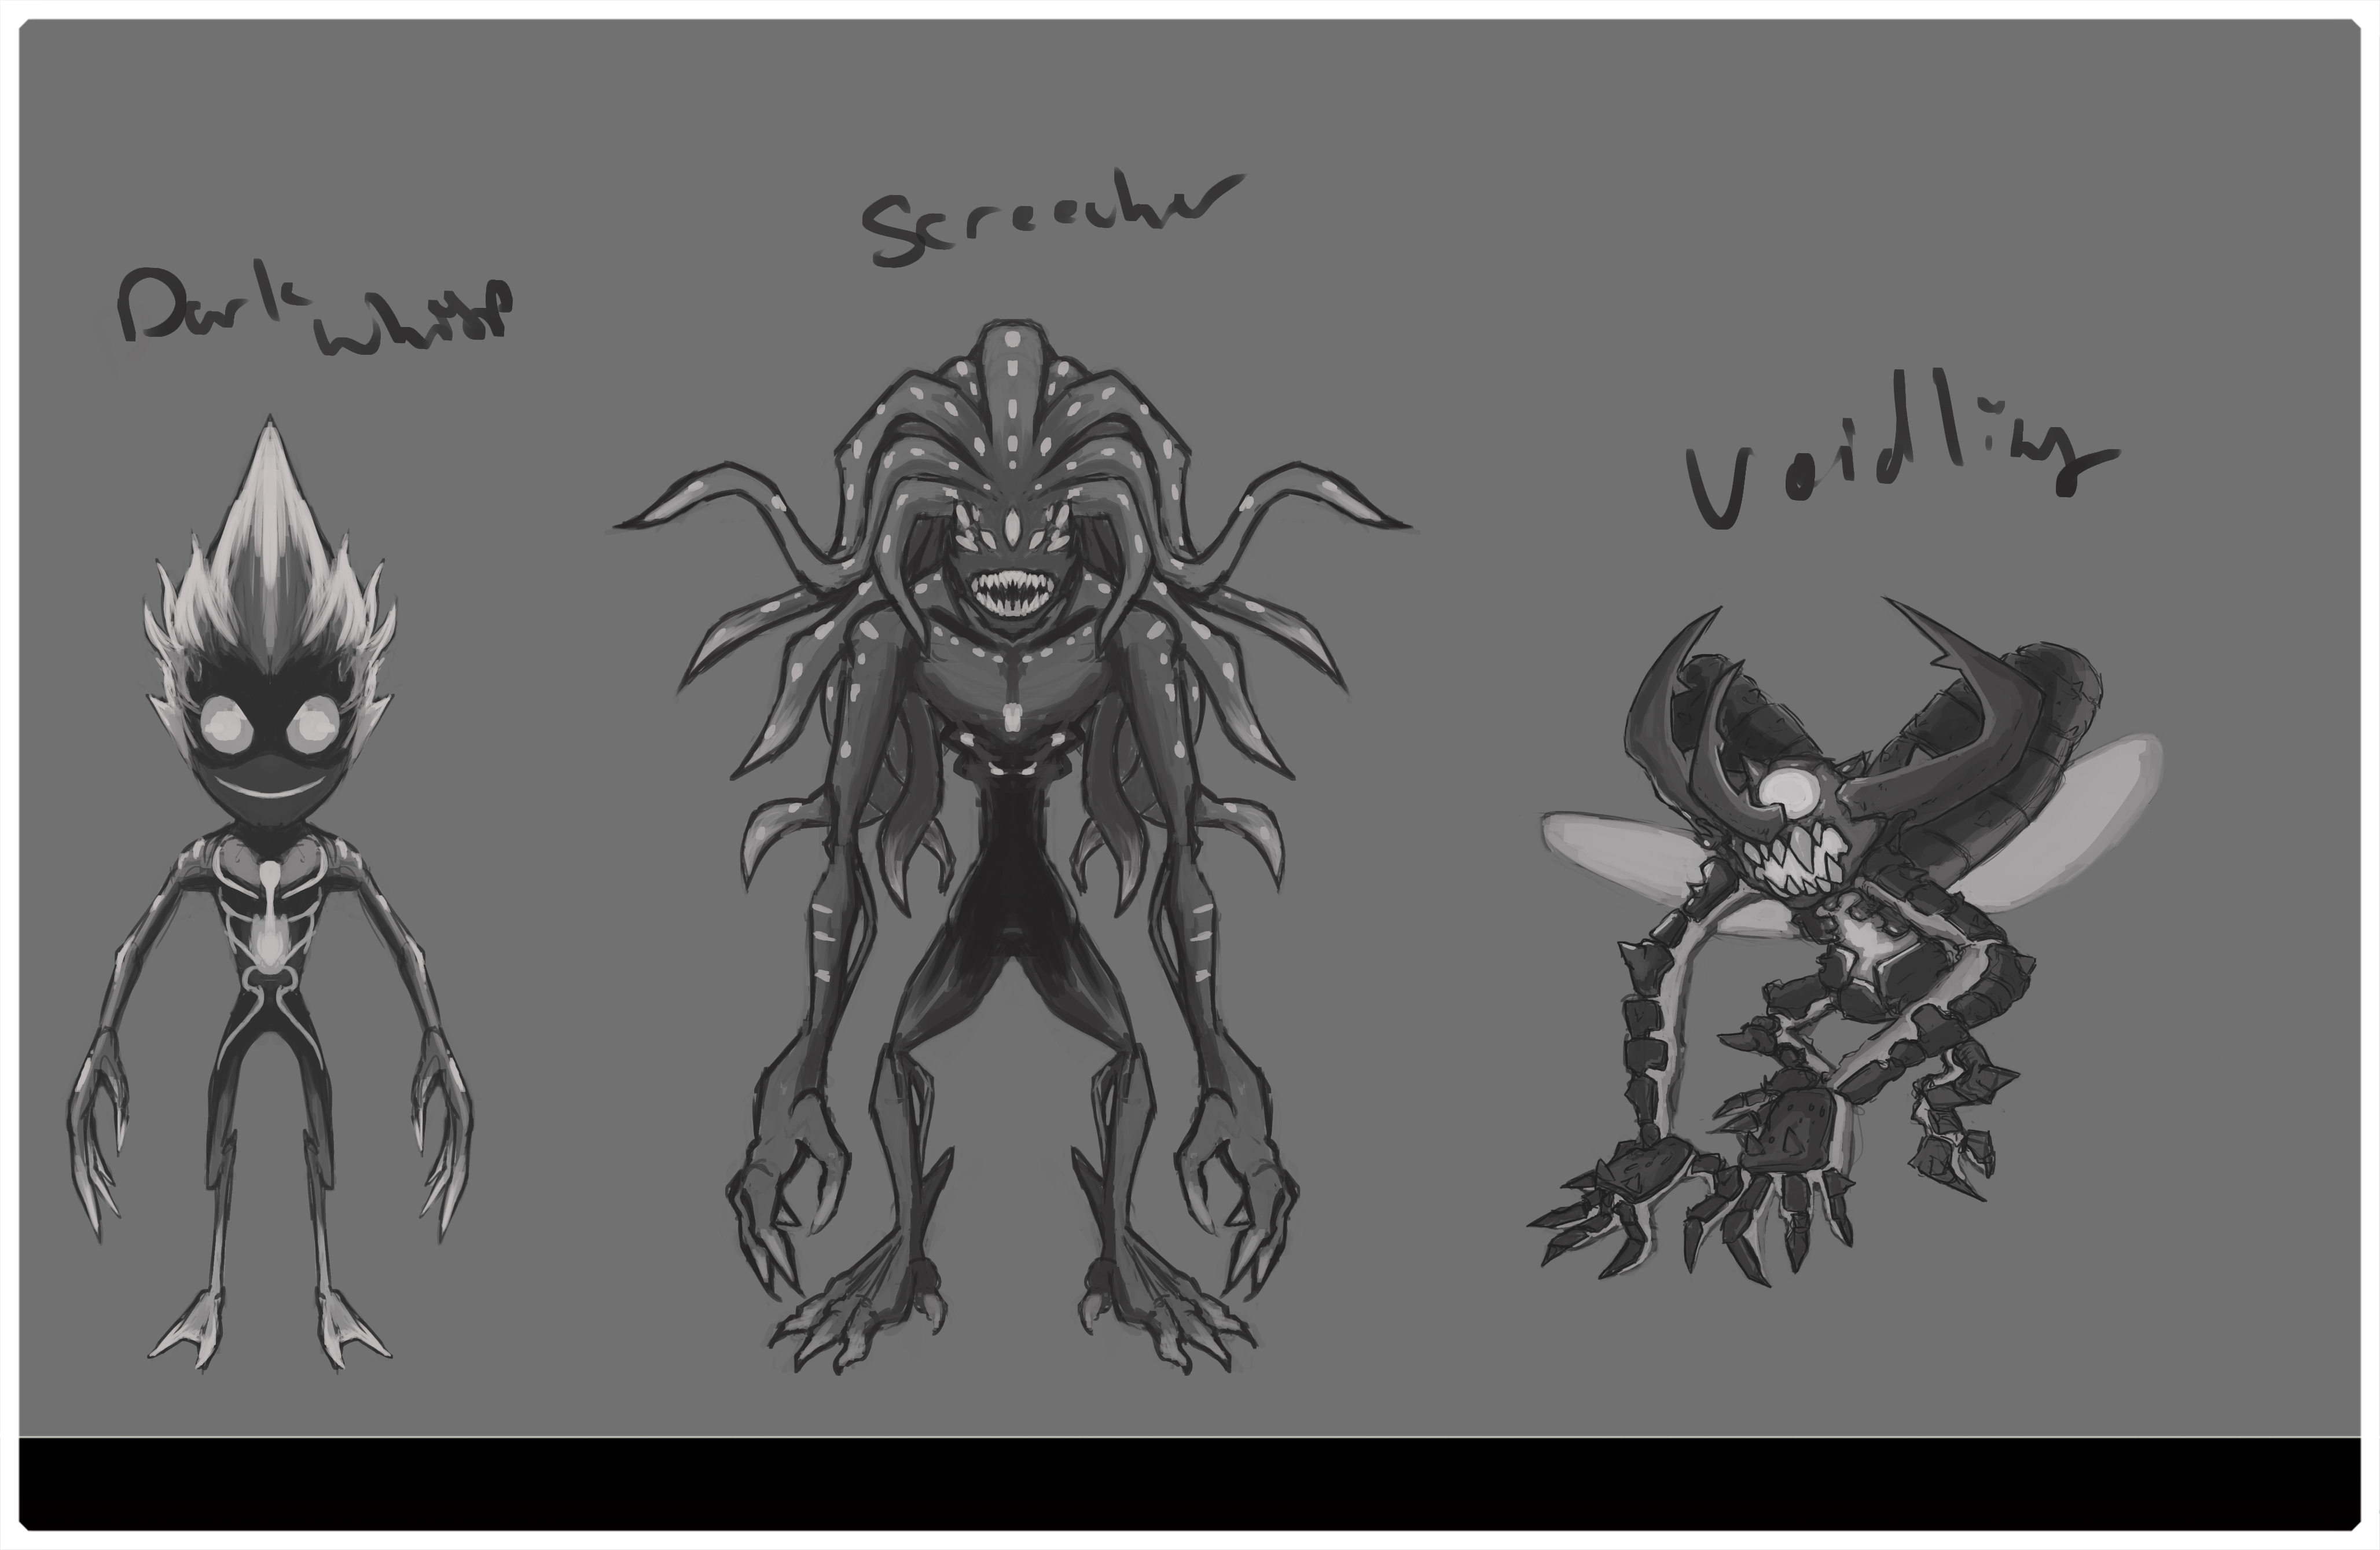 Void unit concept art